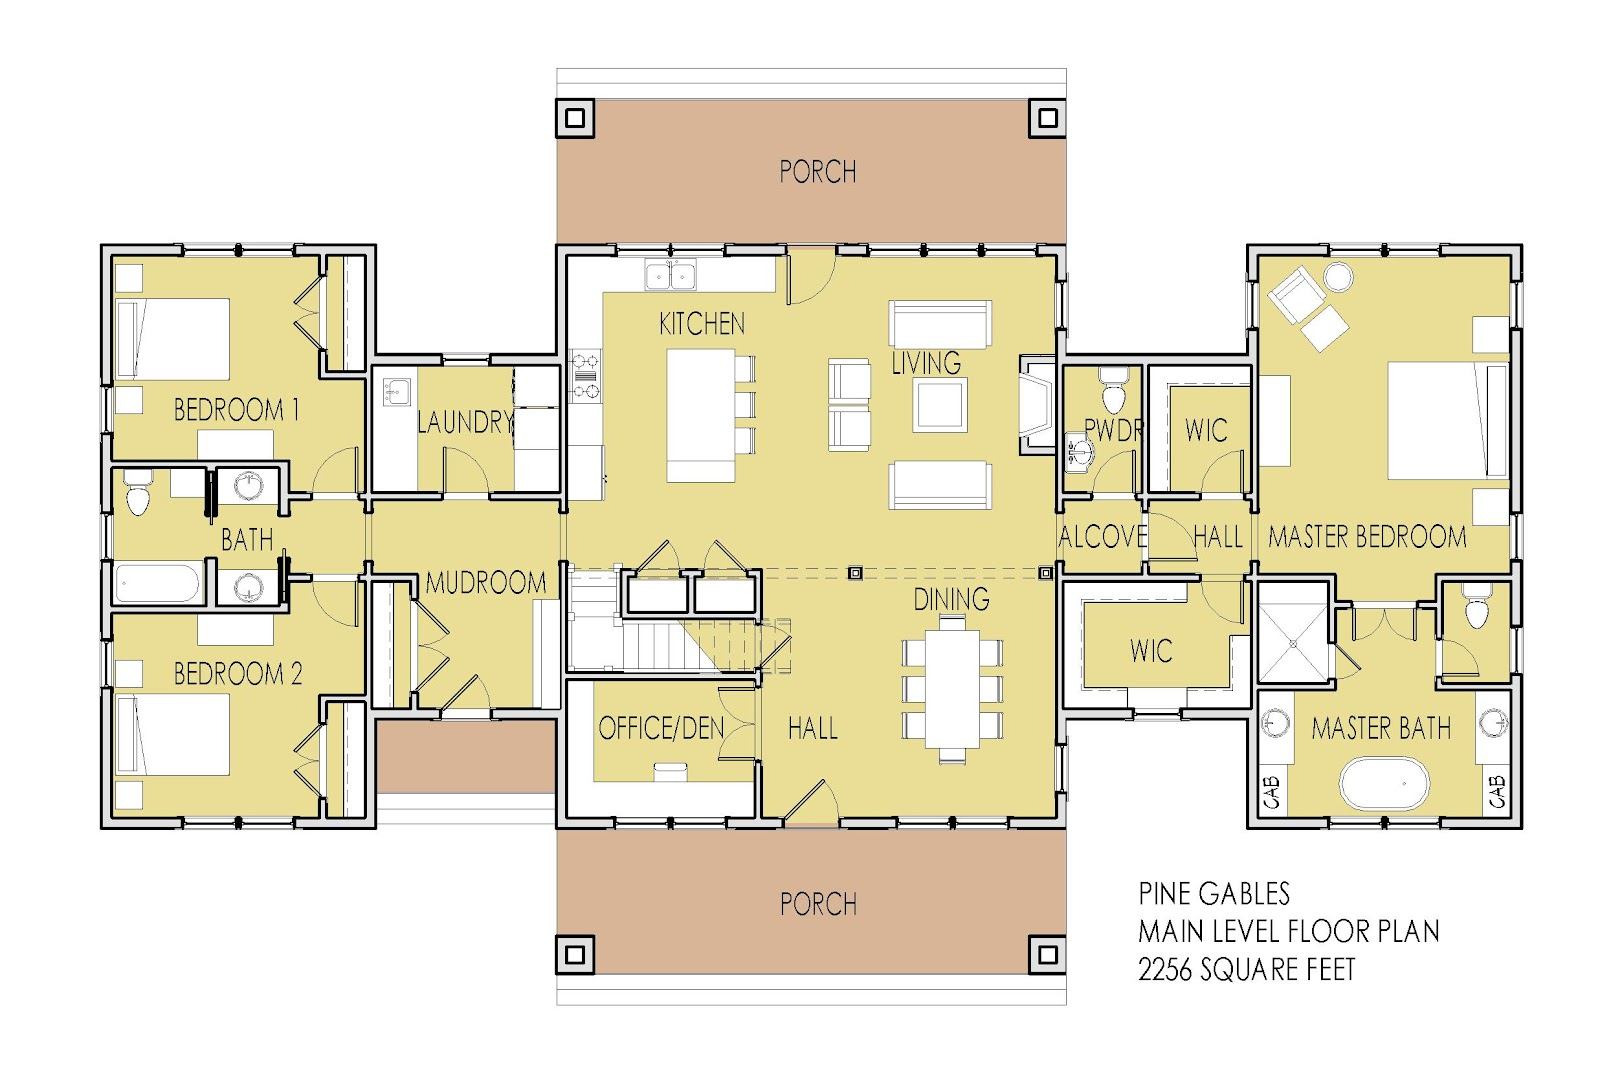 Simply elegant home designs blog september 2012 for Master on main floor plans